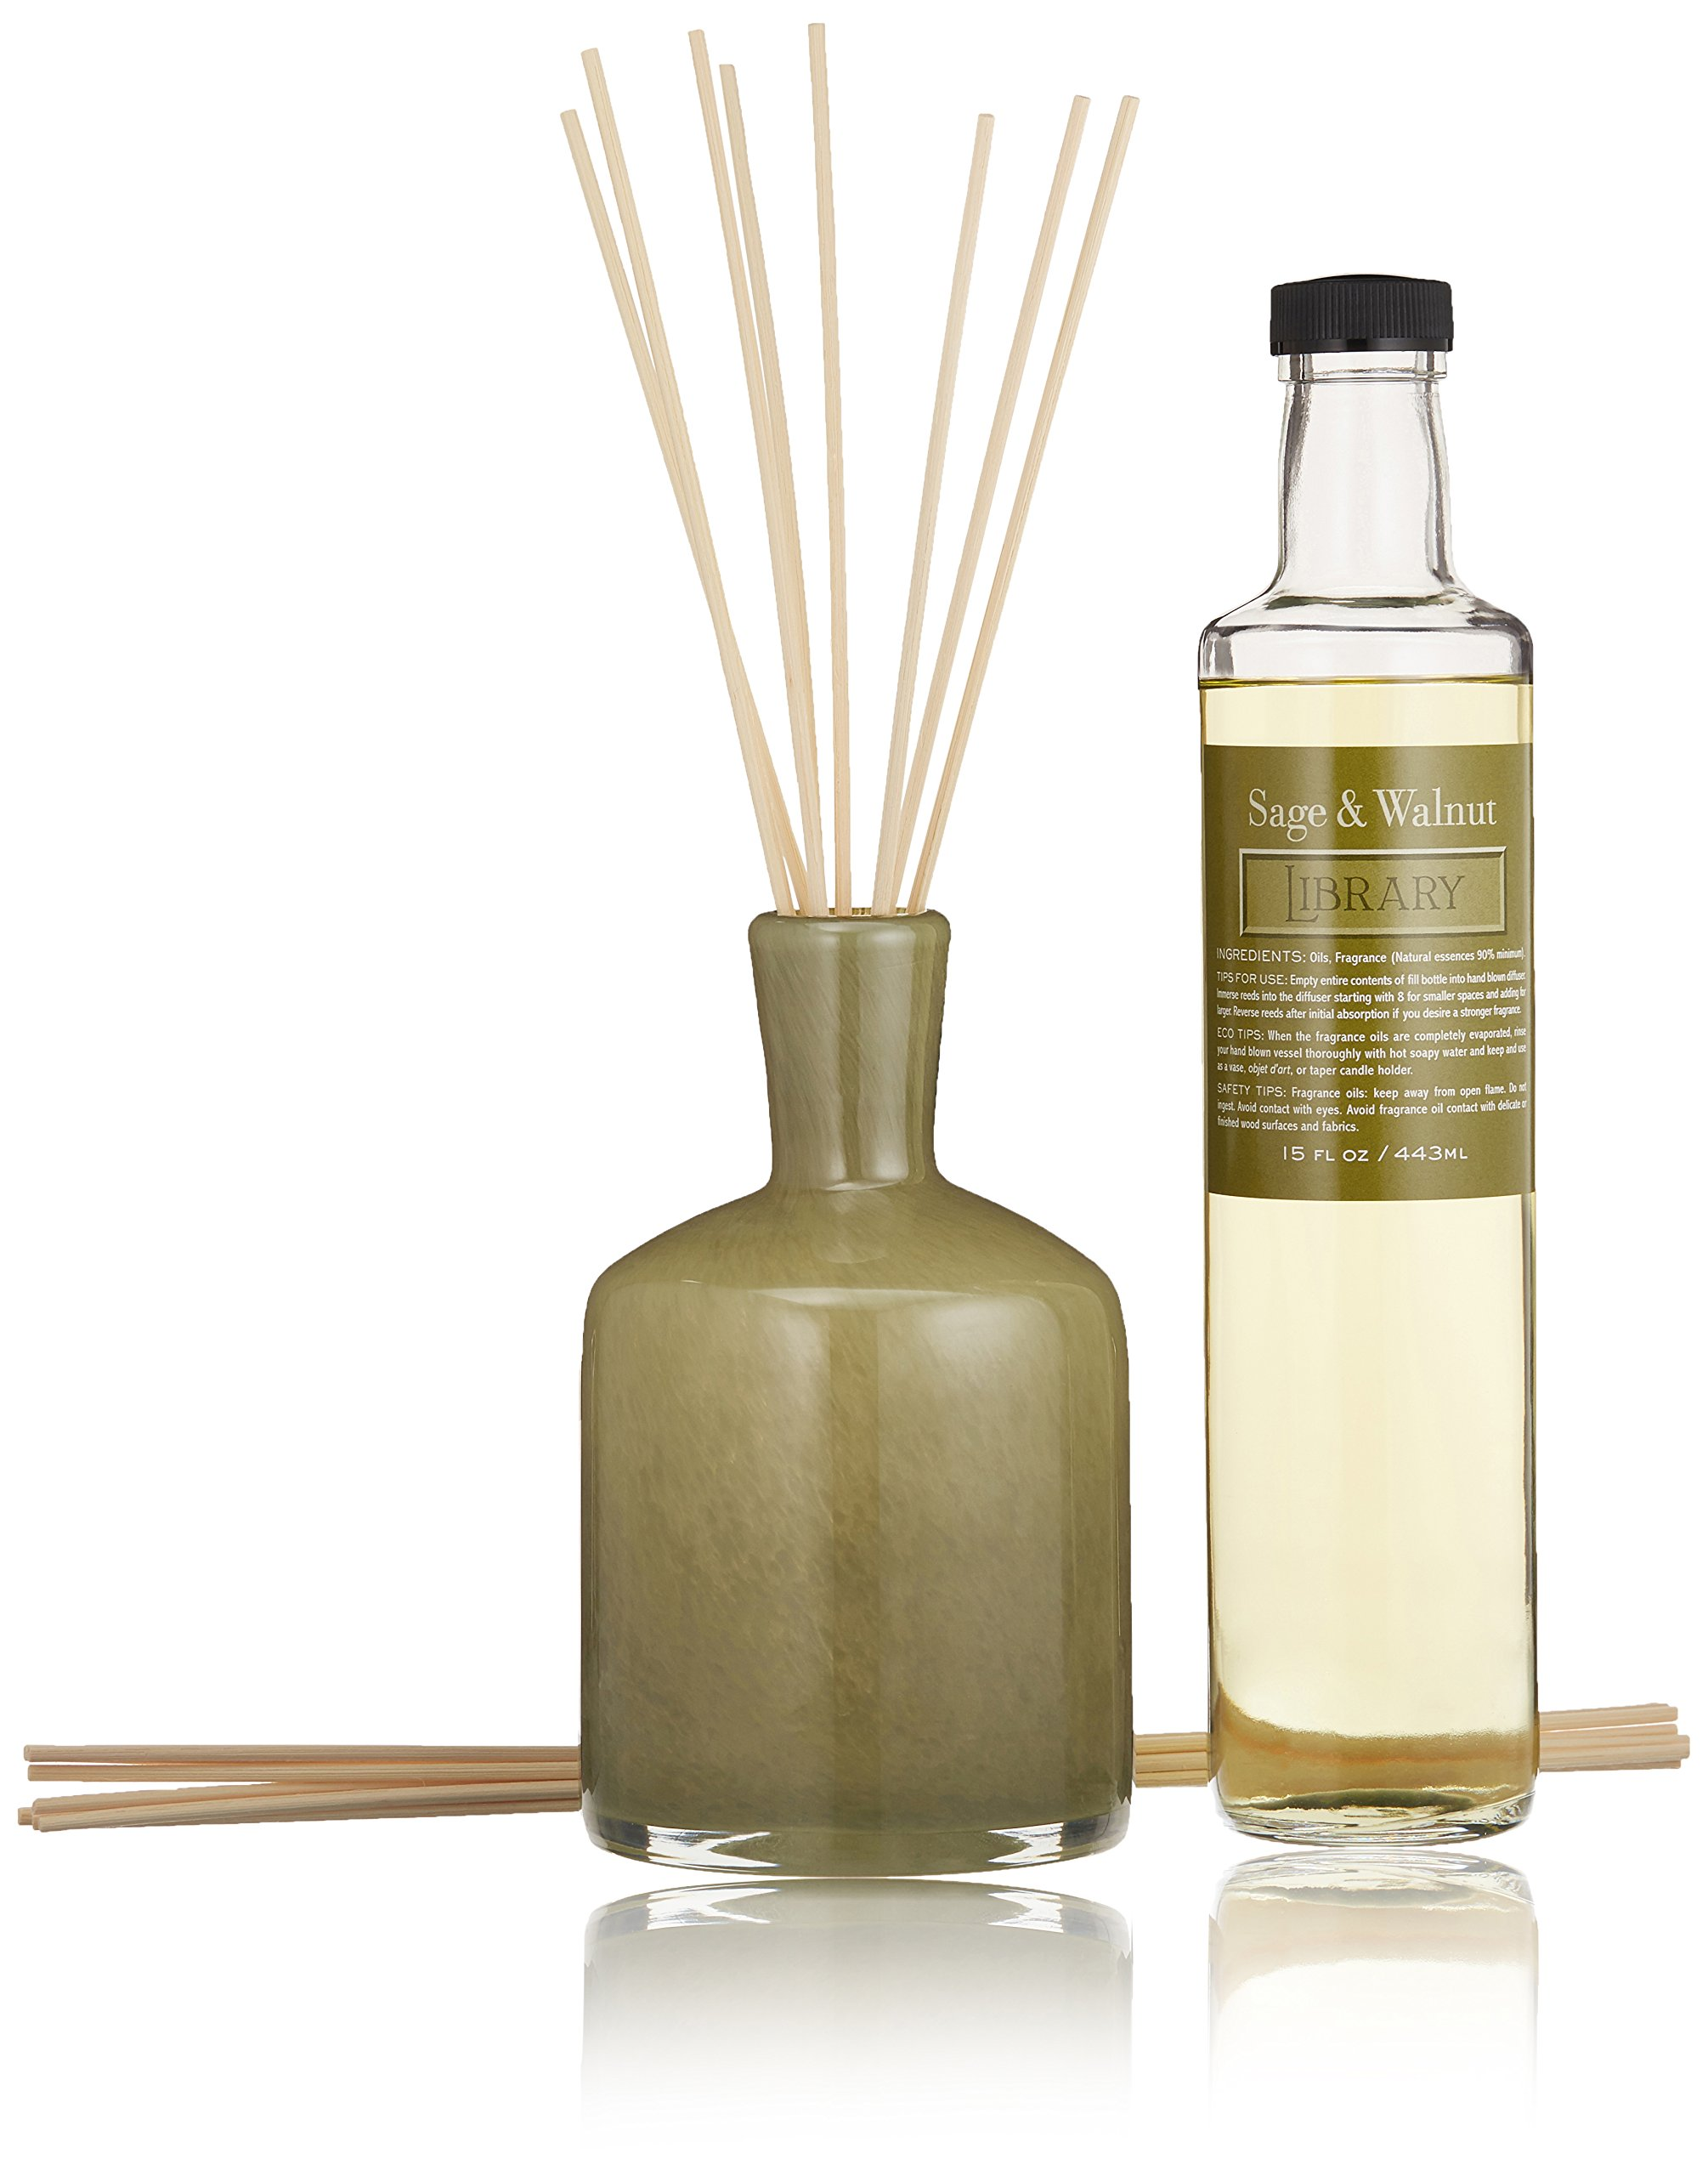 LAFCO House & Home Diffuser, Library Sage & Walnut, 15 Fl Oz